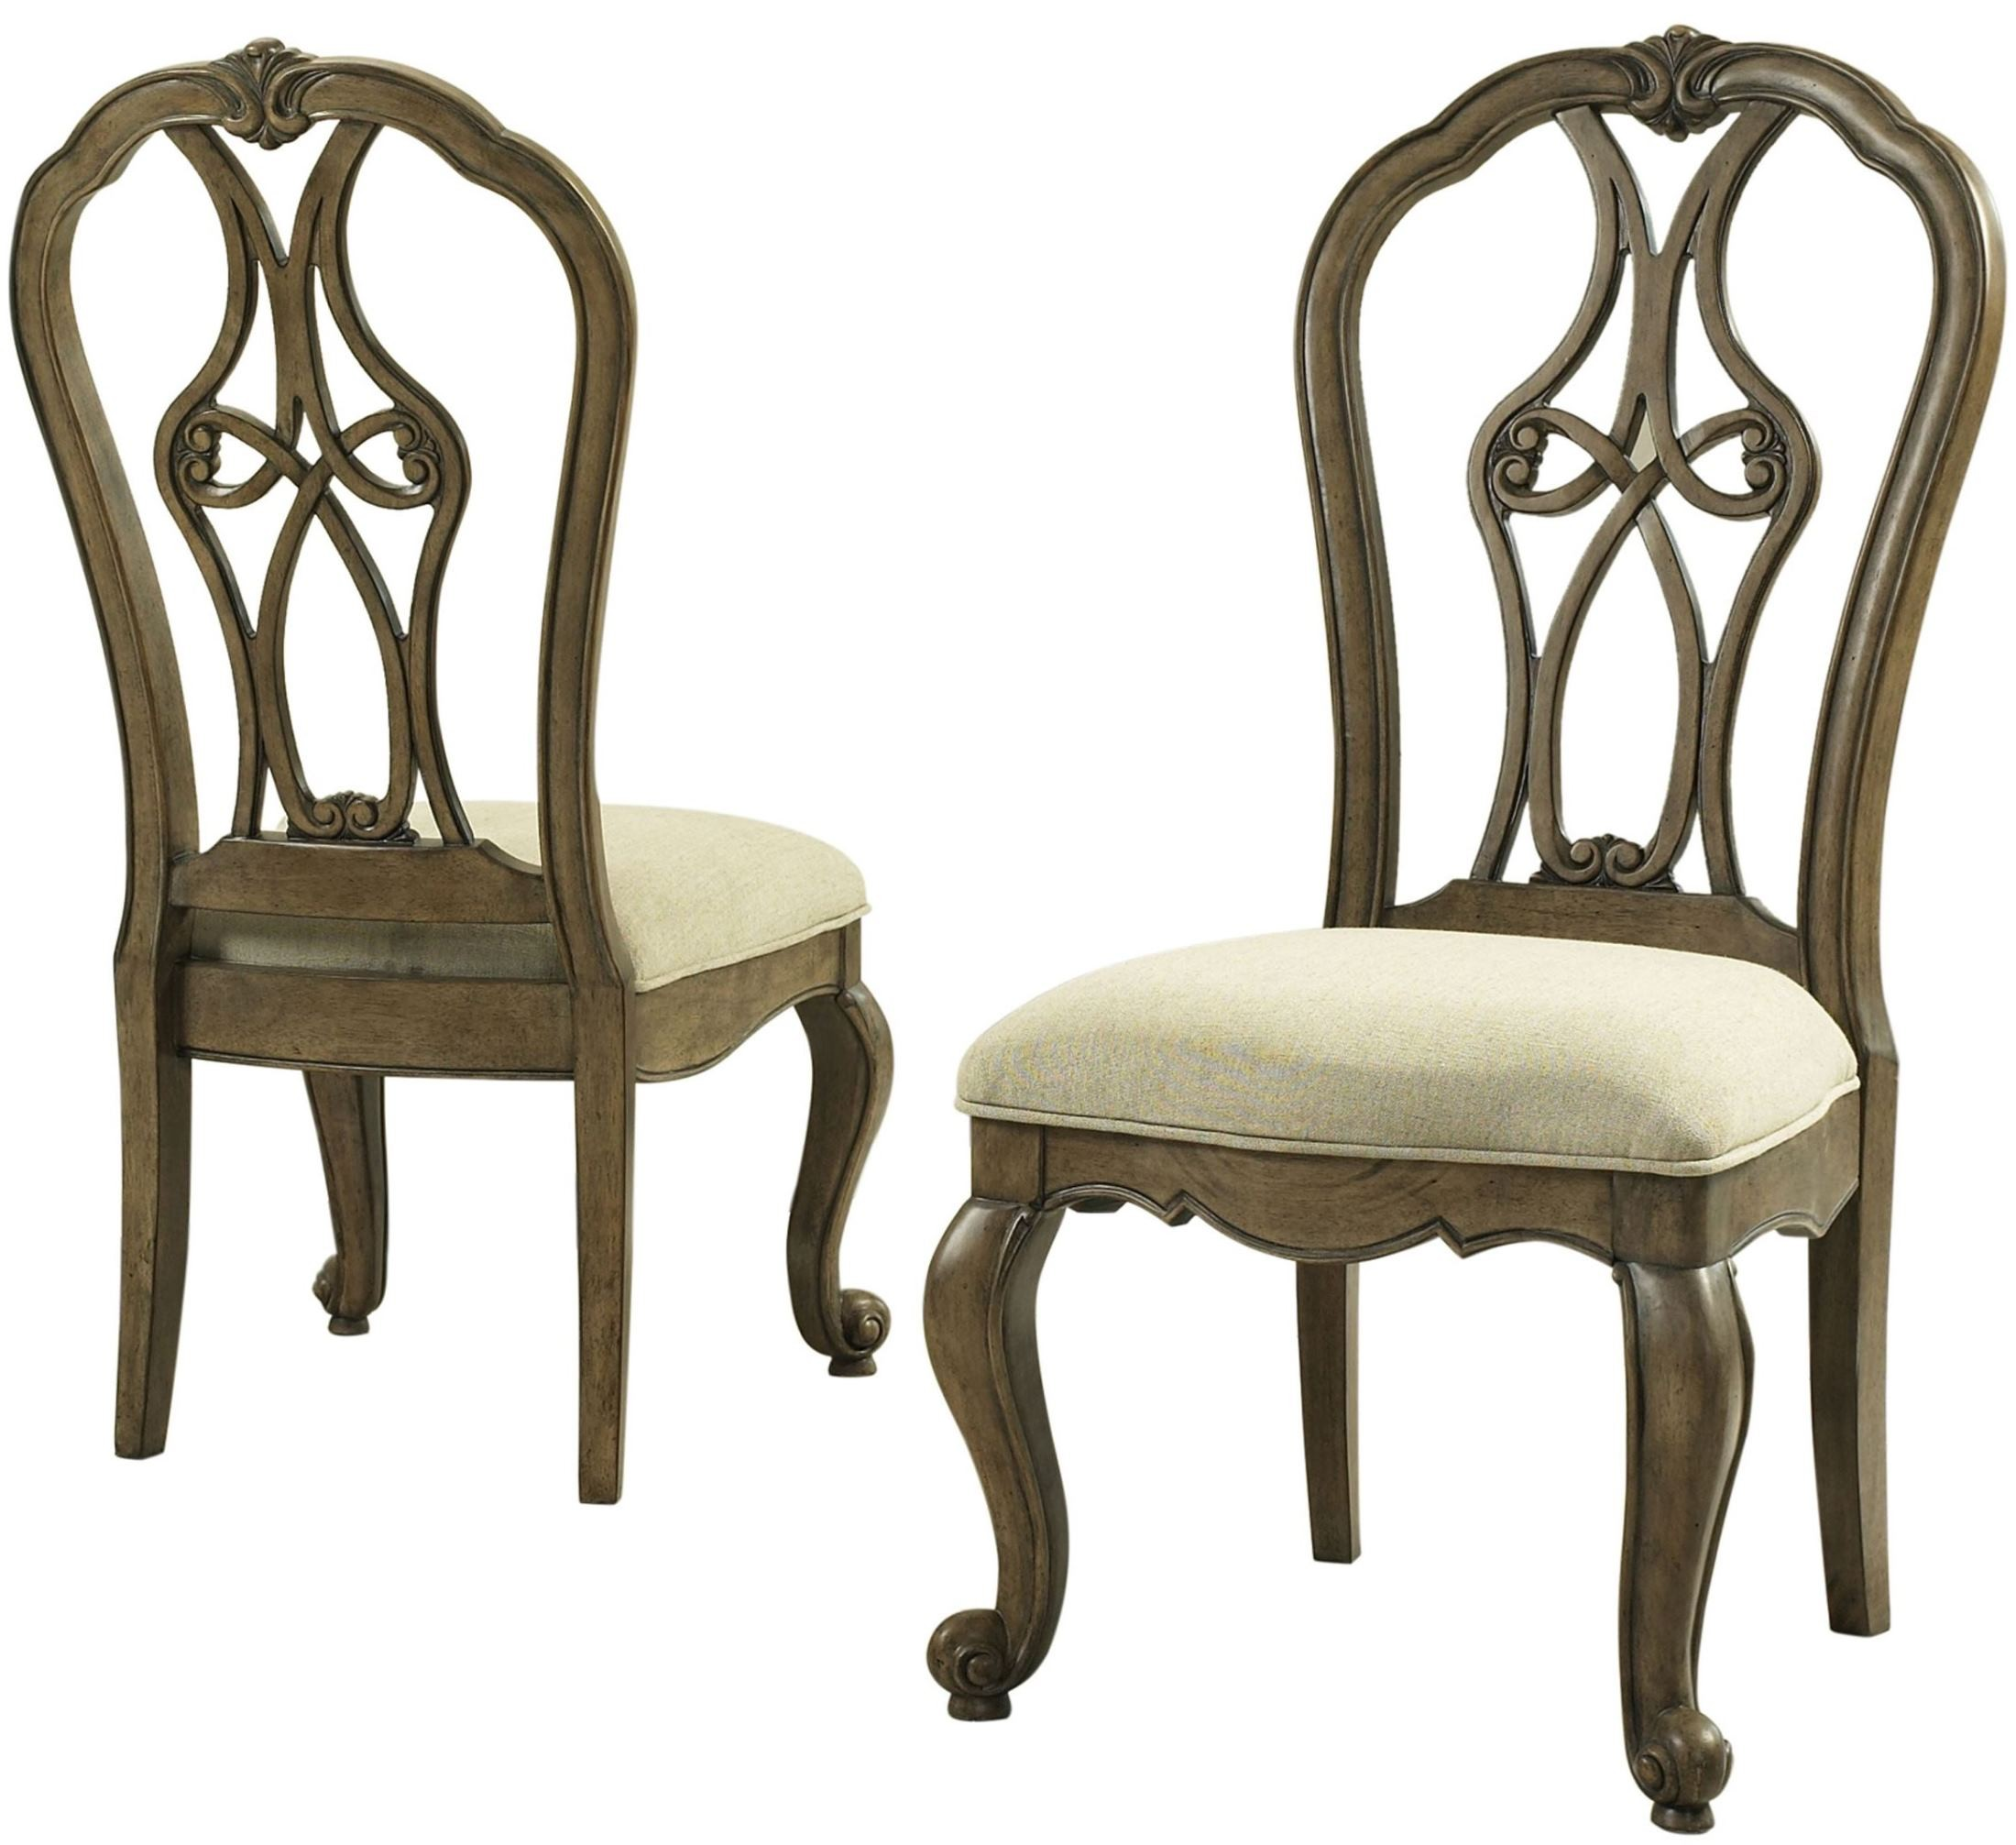 Pecan Wood Furniture Dining Room: Touraine French Glazed Pecan Round Dining Room Set, S4154